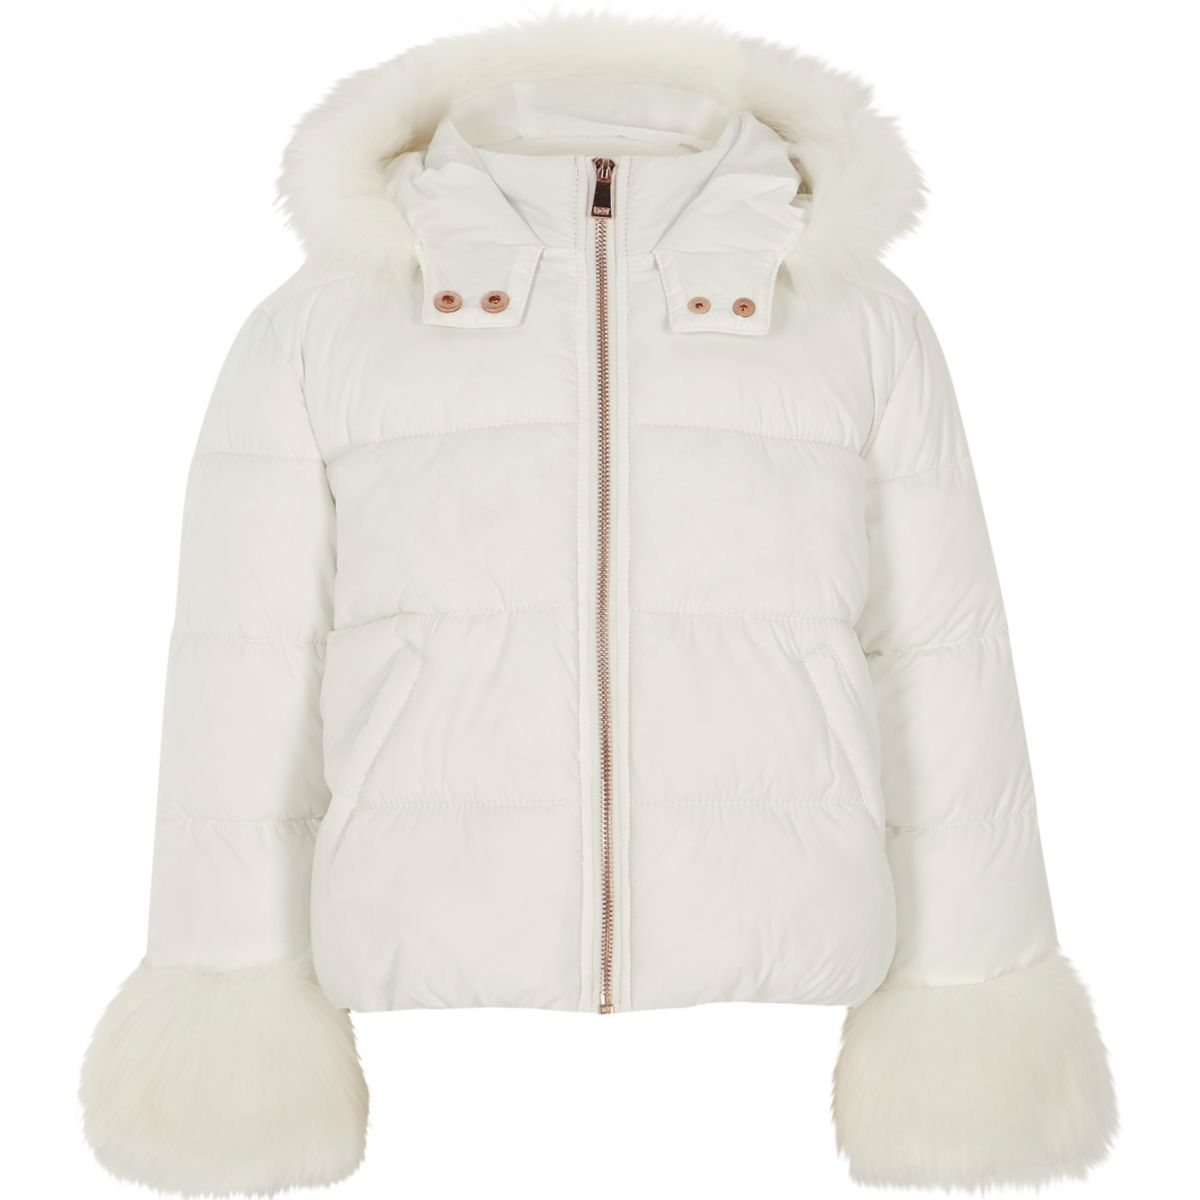 Baby Girl White Faux-Fur Jacket by Gymboree. % polyester faux fur, Gem-button front, Permanent bow in back, Allover faux fur, Fully lined, Machine wash; imported and Collection Name: Emerald Party. GYMBOREE REWARDS. Get in on the good stuff. Returns Ship Free. We want you to .